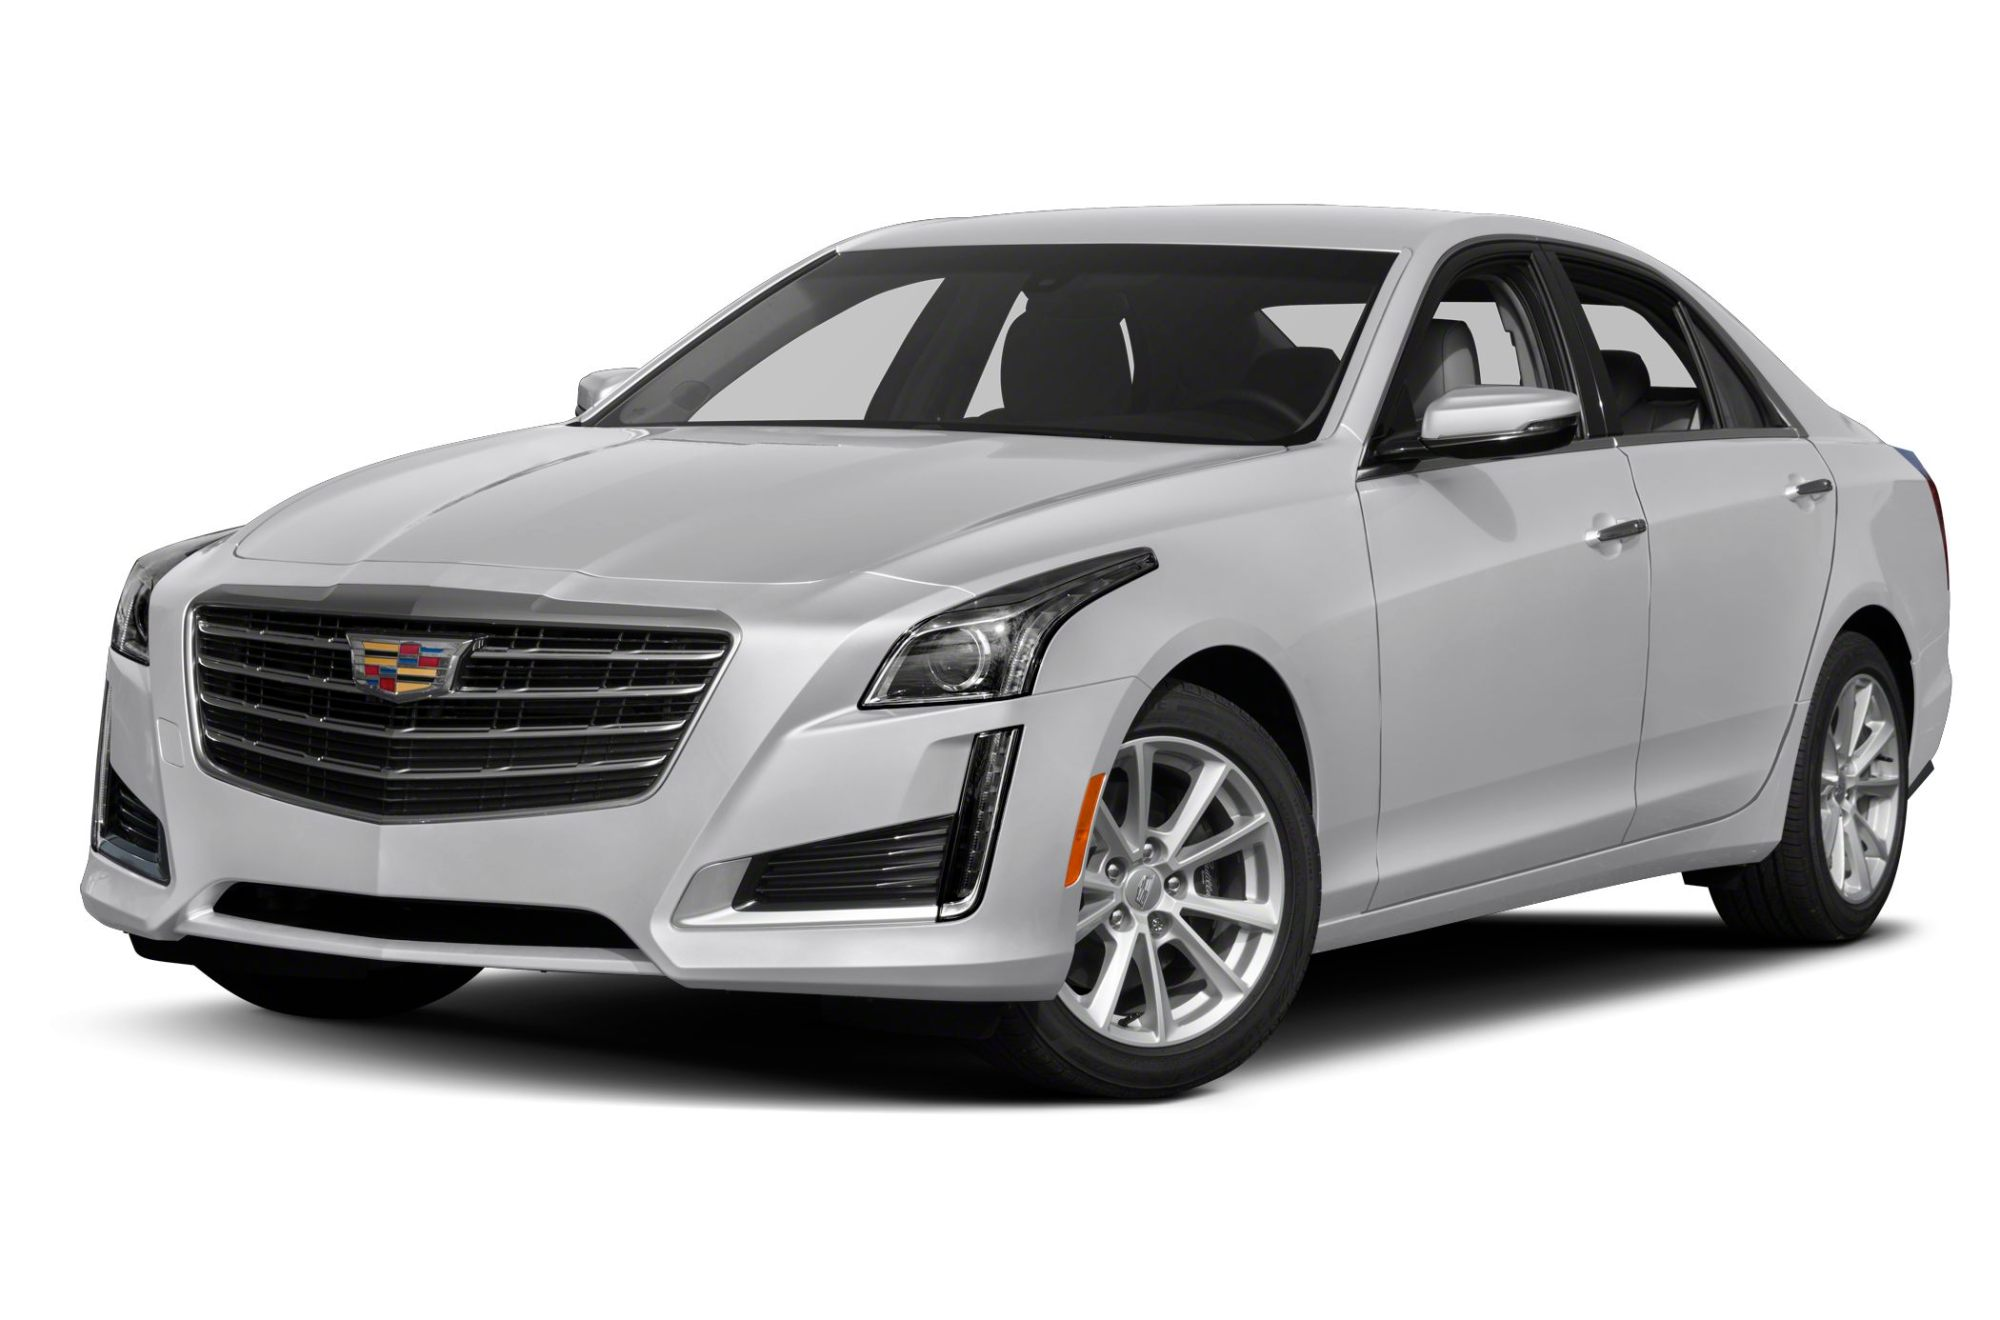 hight resolution of 2019 cadillac cts 3 6l twin turbo v sport premium luxury 4dr rear wheel drive sedan specs and prices